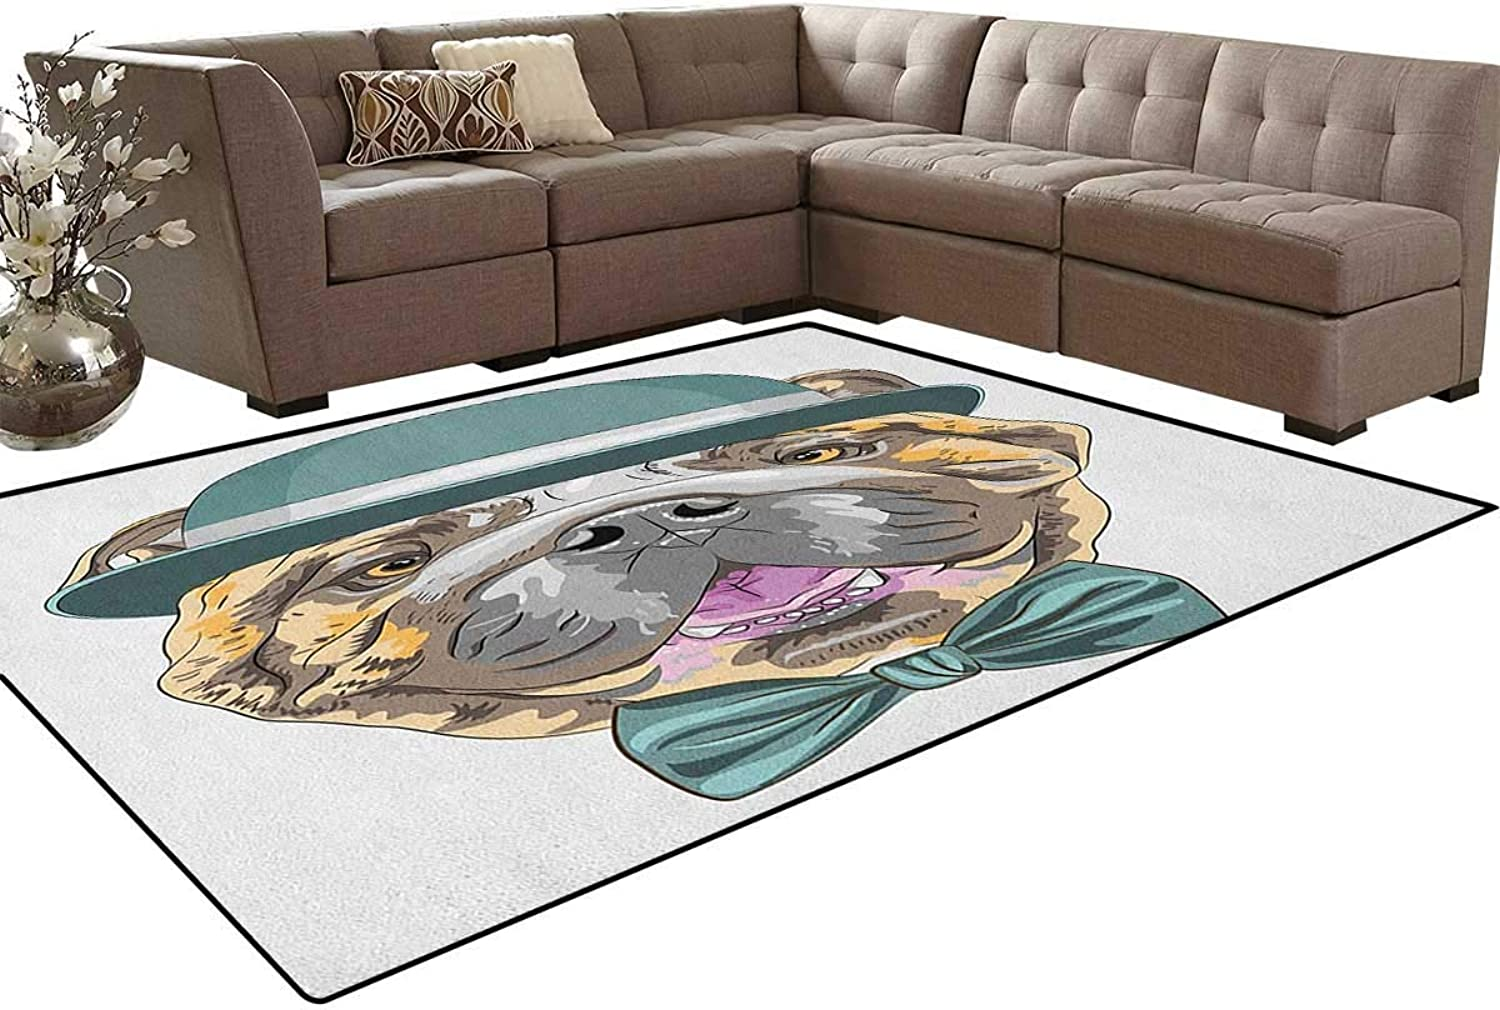 Dog in a Hat and Bow Tie Animal Design with Formal Attire Pure Breed Floor Mat Rug Indoor Front Door Kitchen and Living Room Bedroom Mats Rubber Non Slip